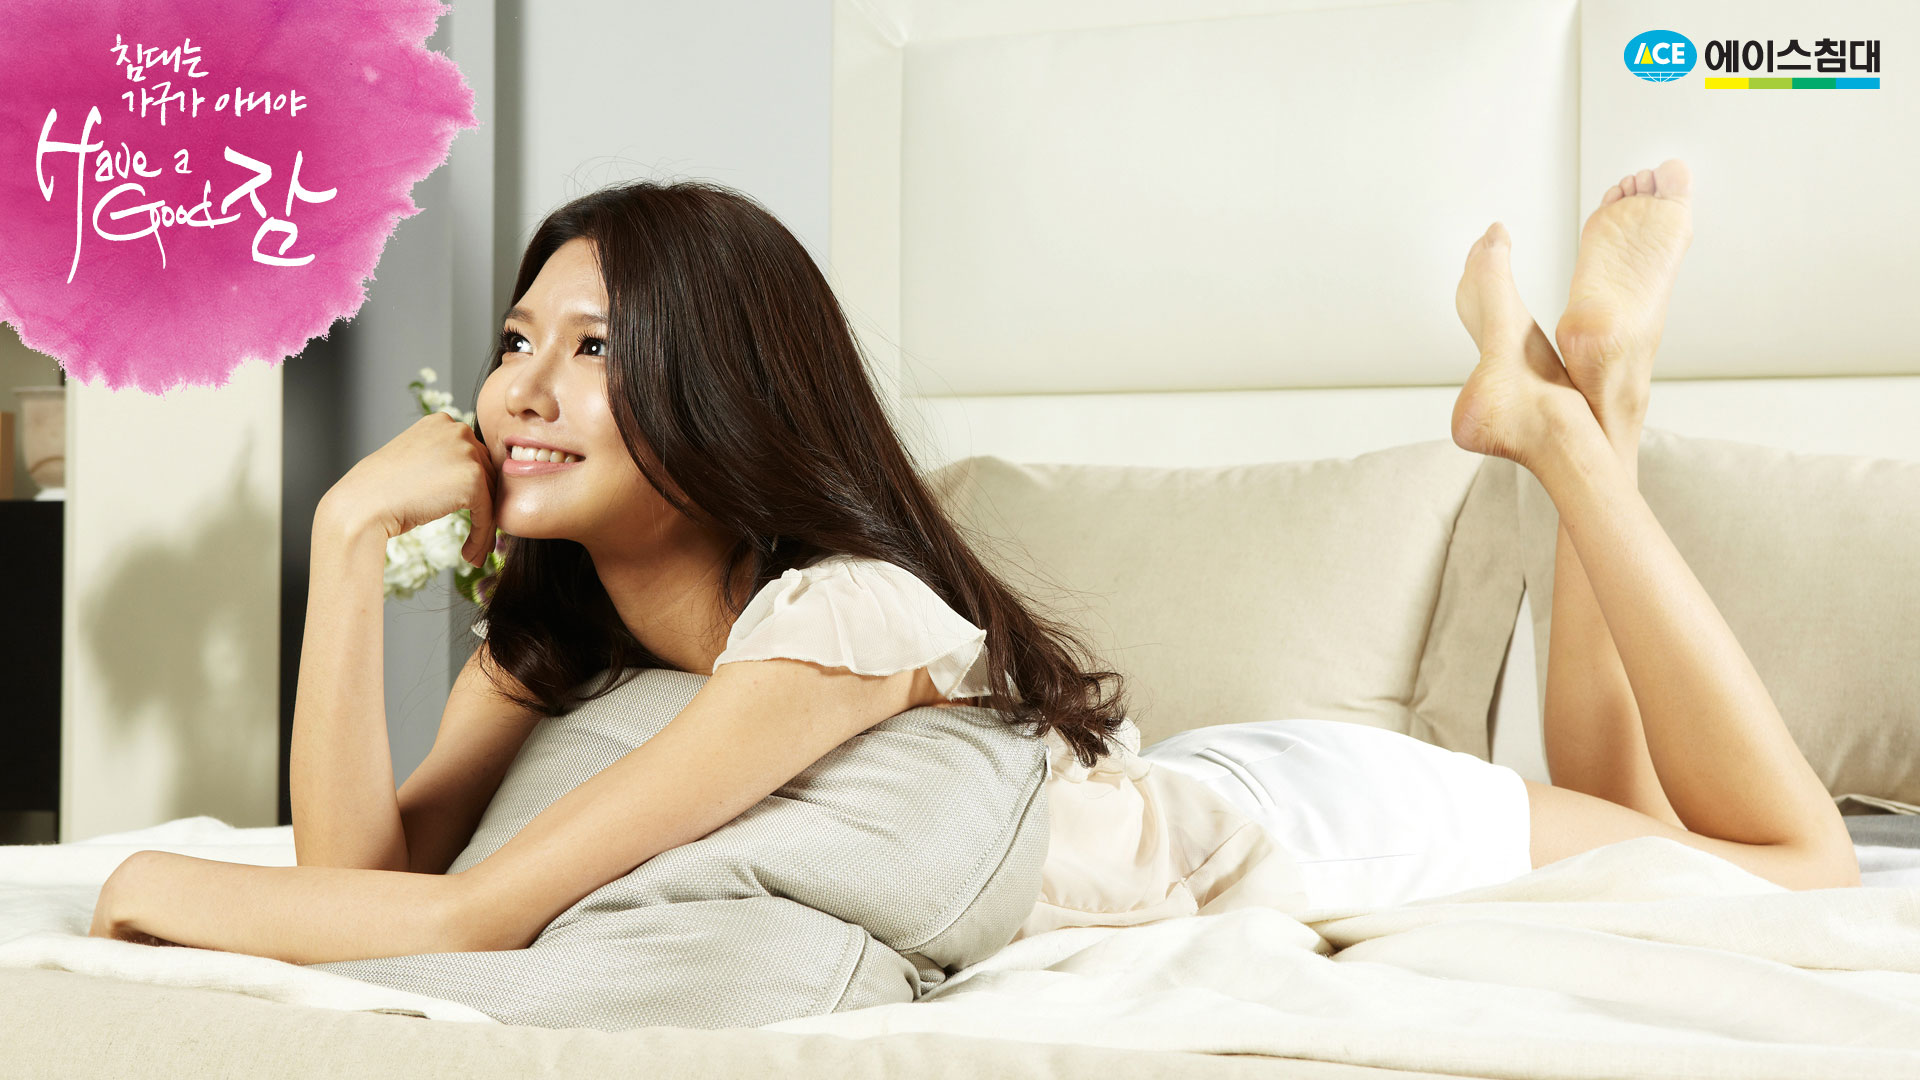 SNSD Sooyoung Ace Bed wallpaper